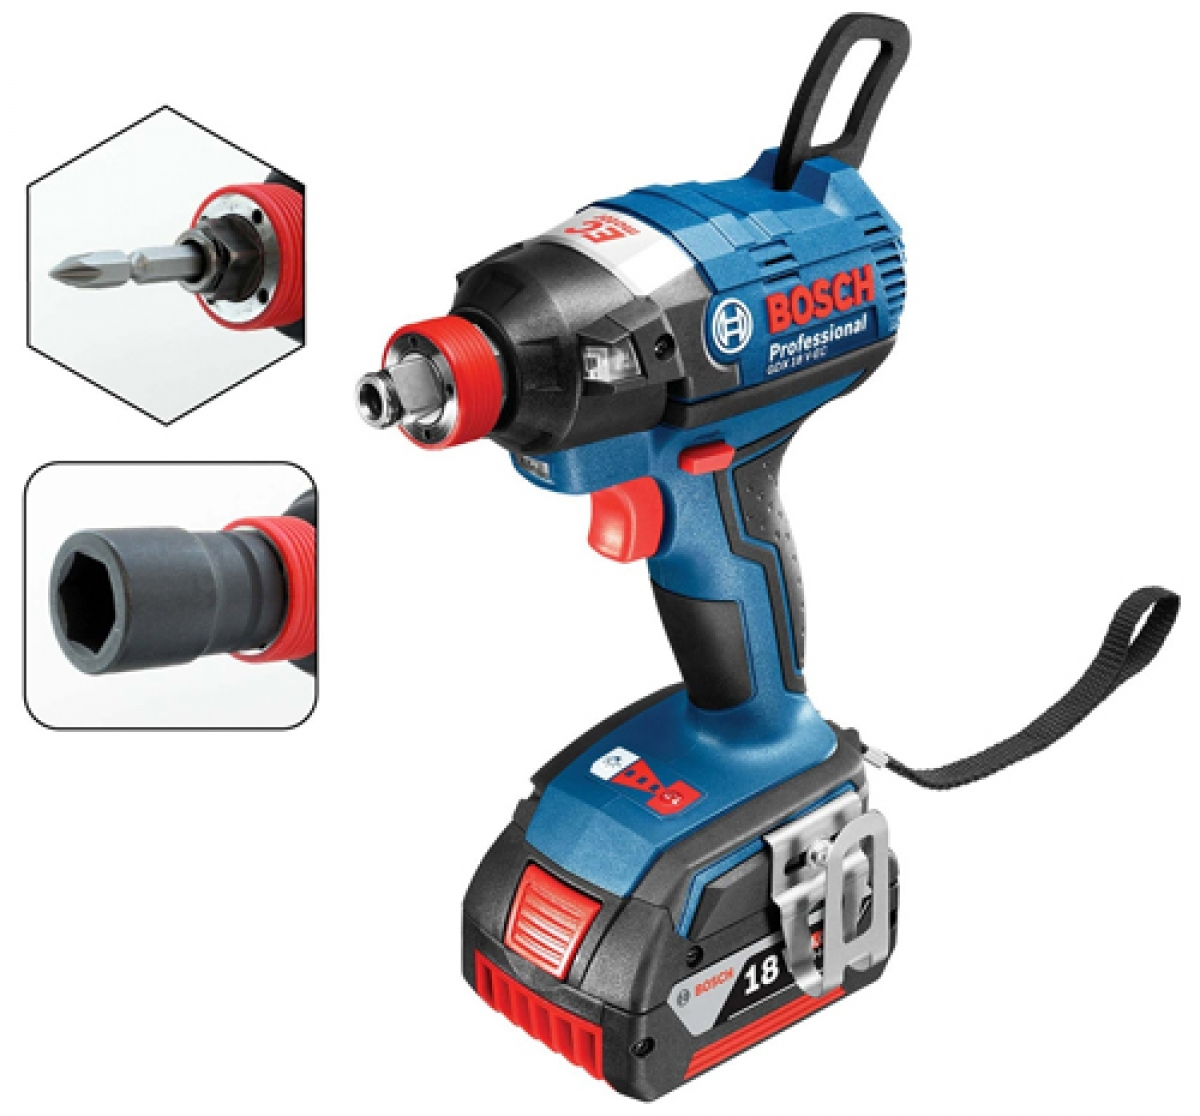 bosch gdx 18v ec professional review